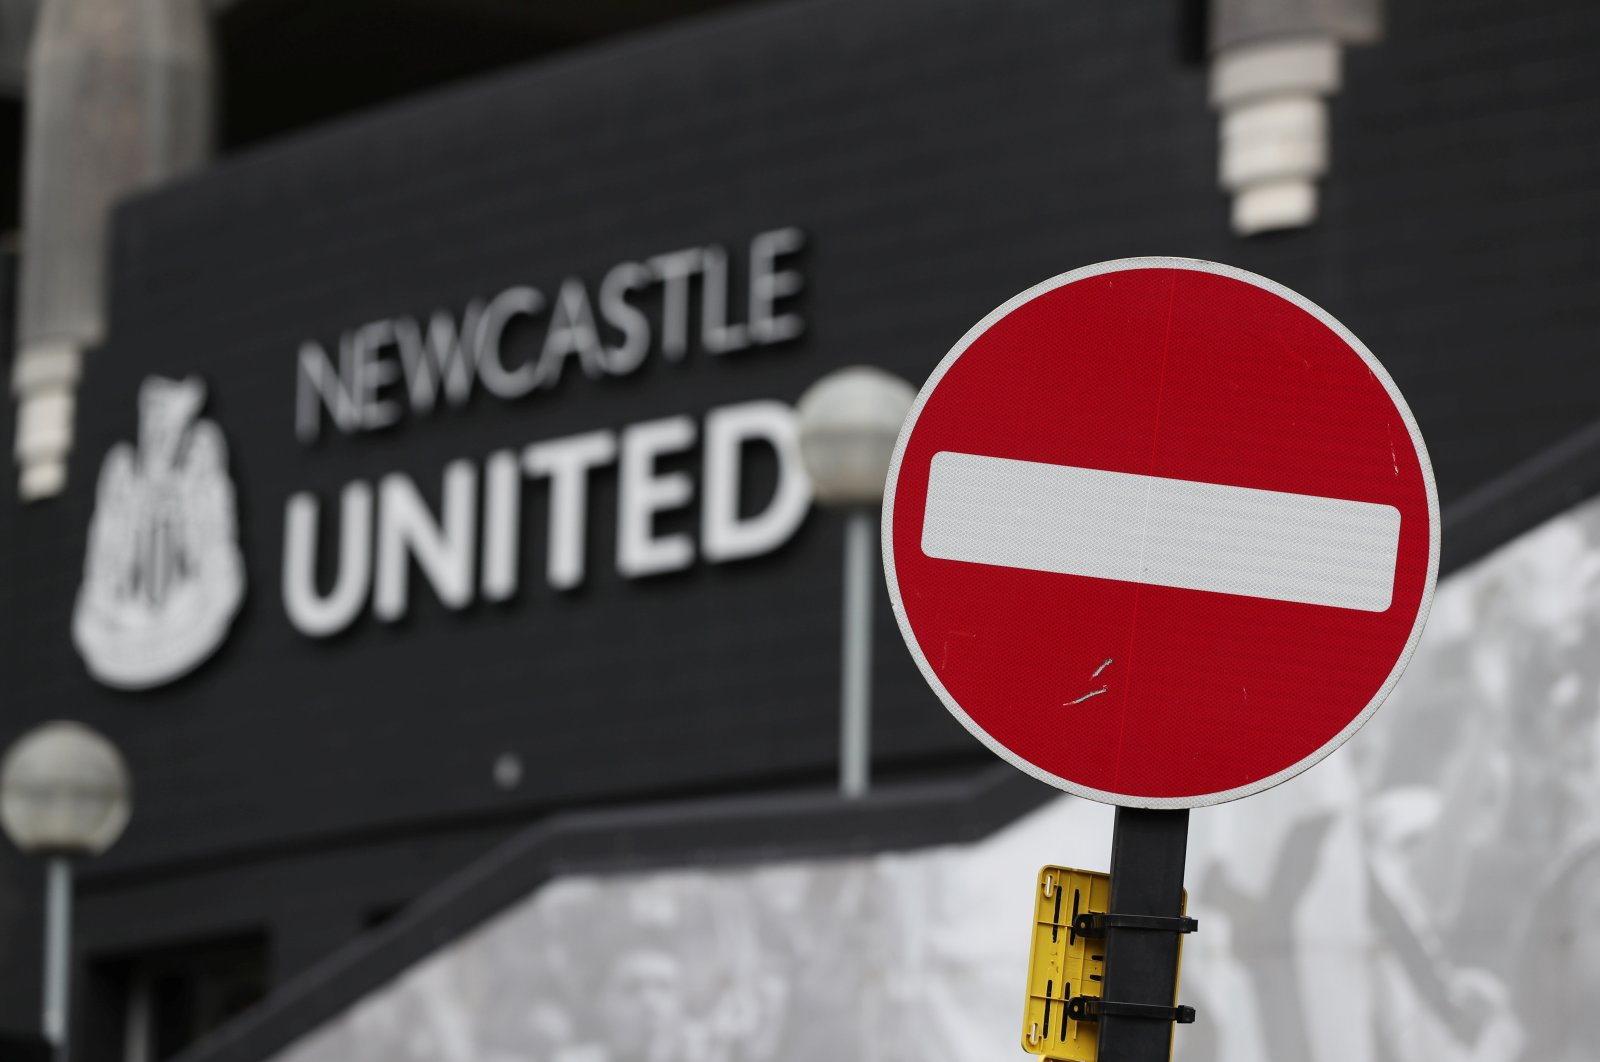 General view outside Newcastle United's home stadium St. James' Park as the Premier League is suspended due to the number of coronavirus cases growing around the world, Newcastle, U.K., March 13, 2020. (Reuters Photo)